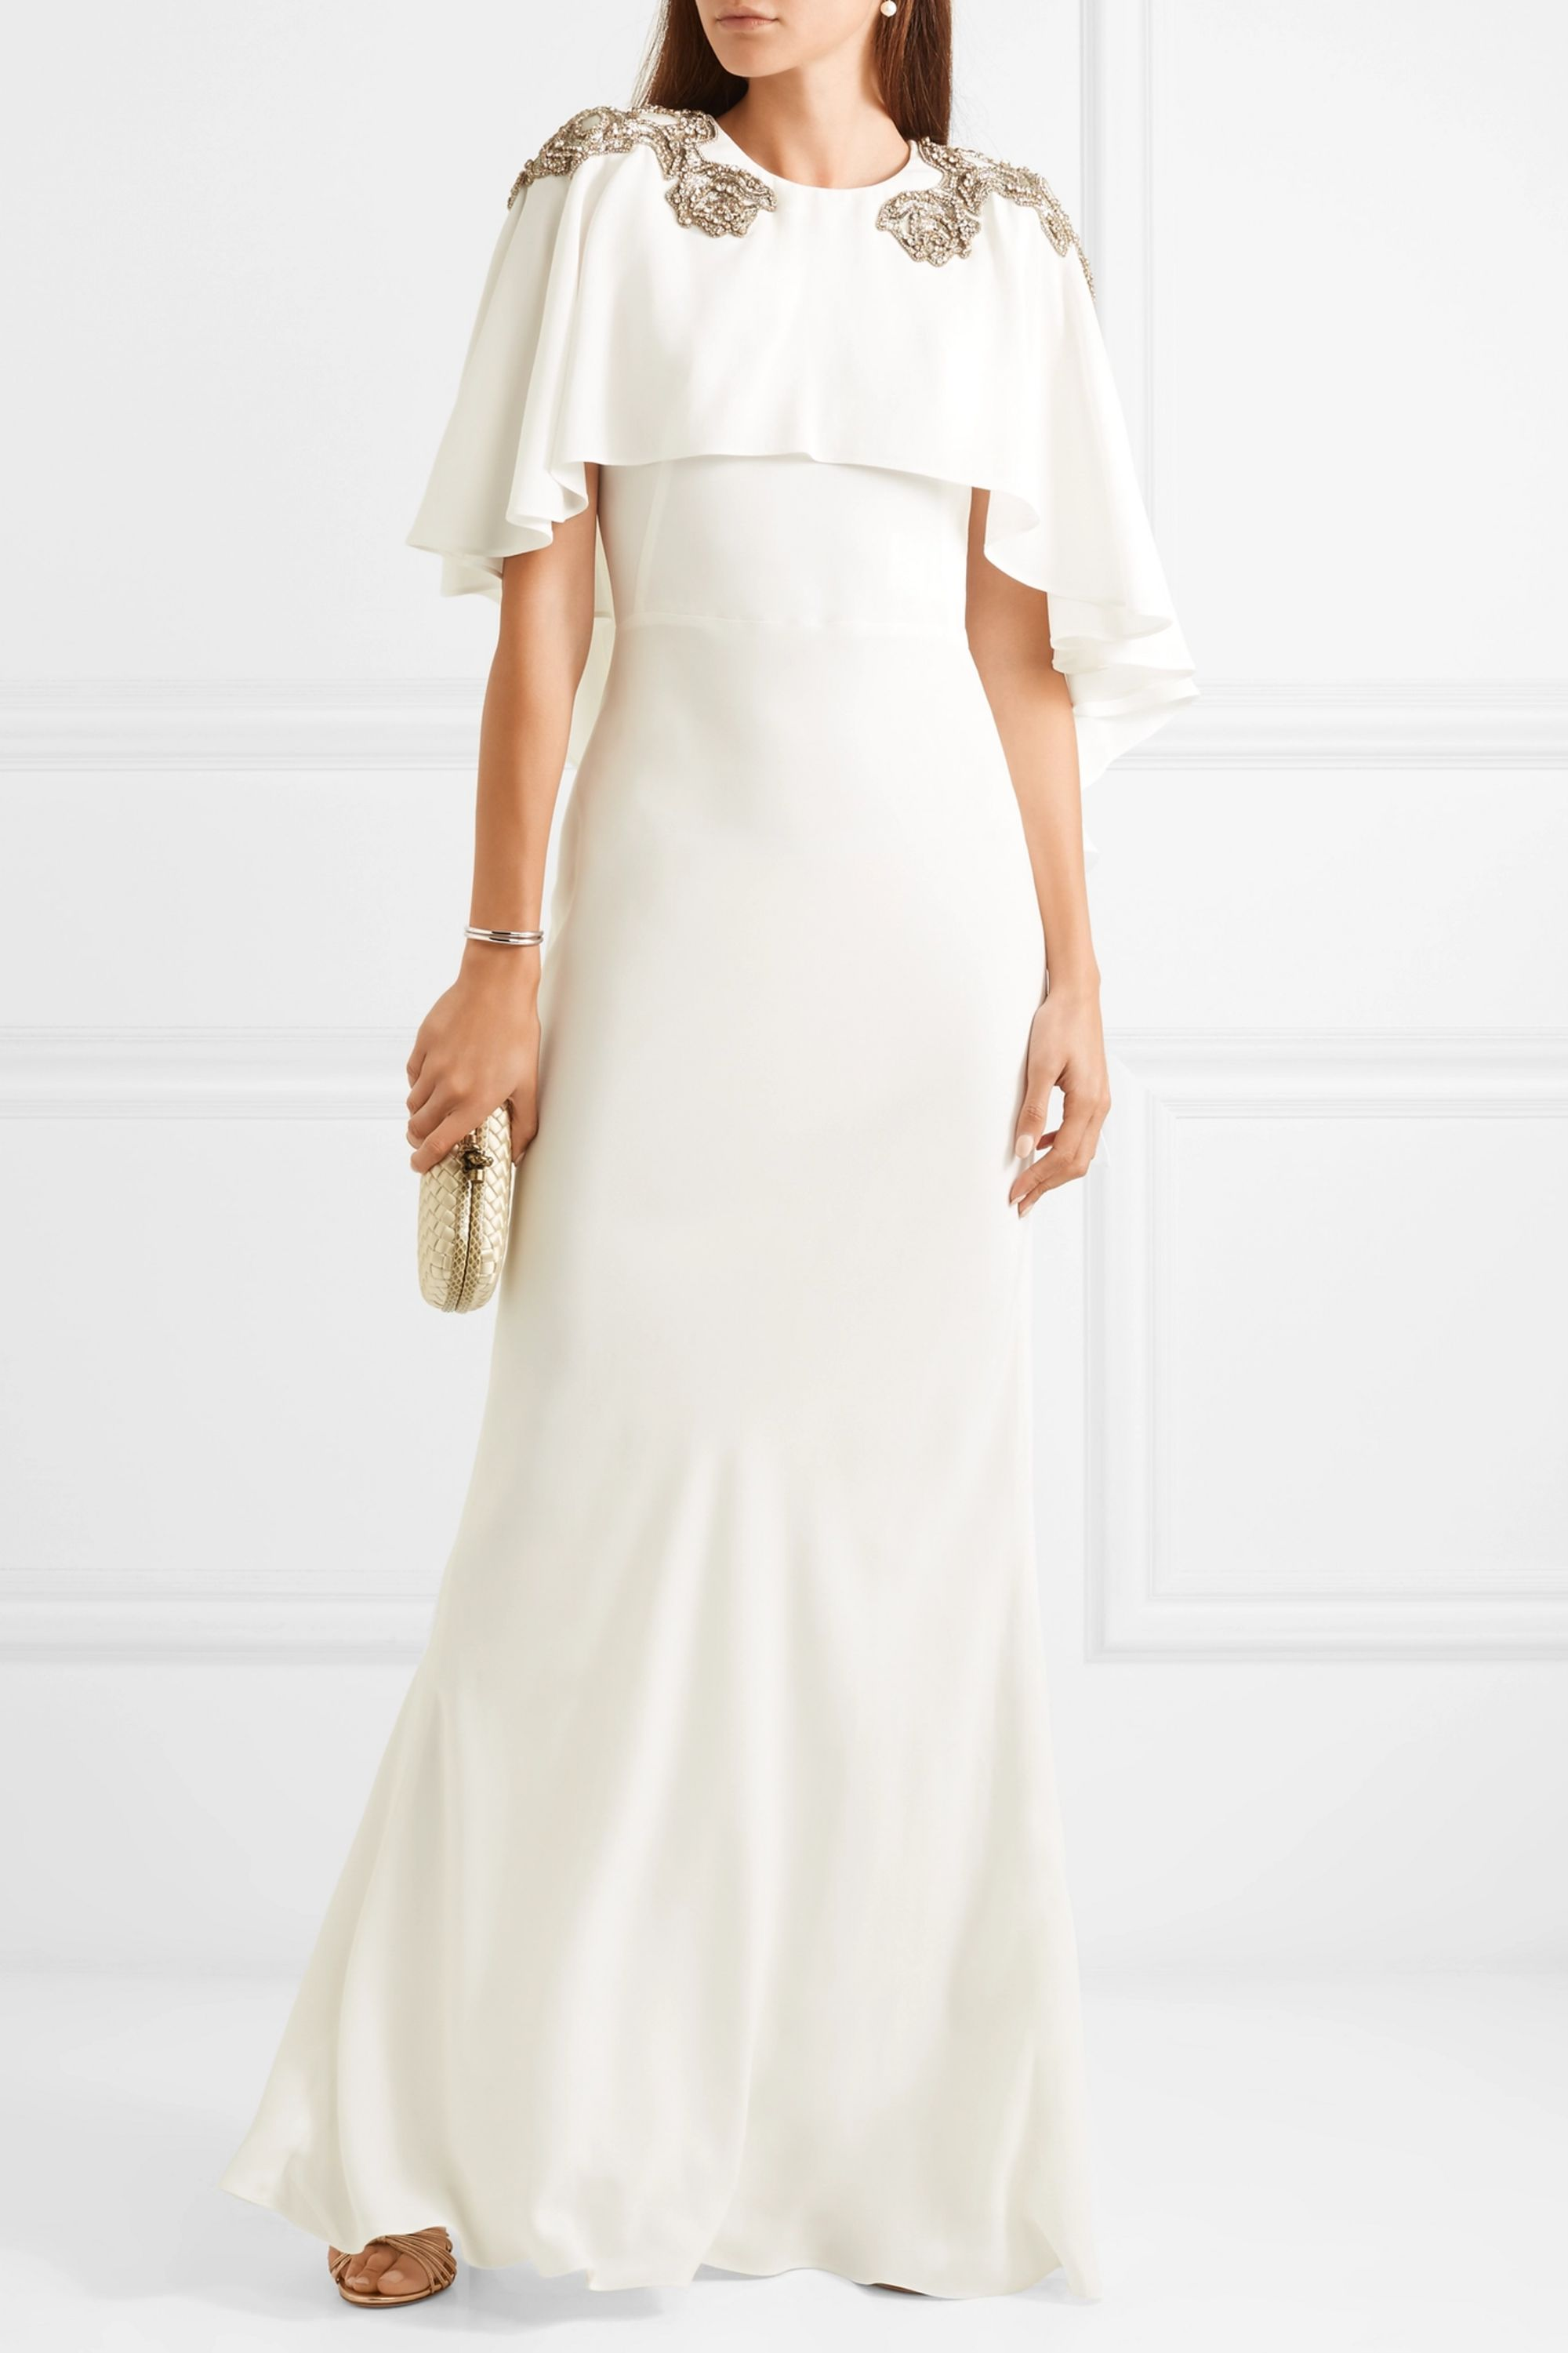 Ivory Cape Effect Embellished Crepe Gown Alexander Mcqueen Net A Porter